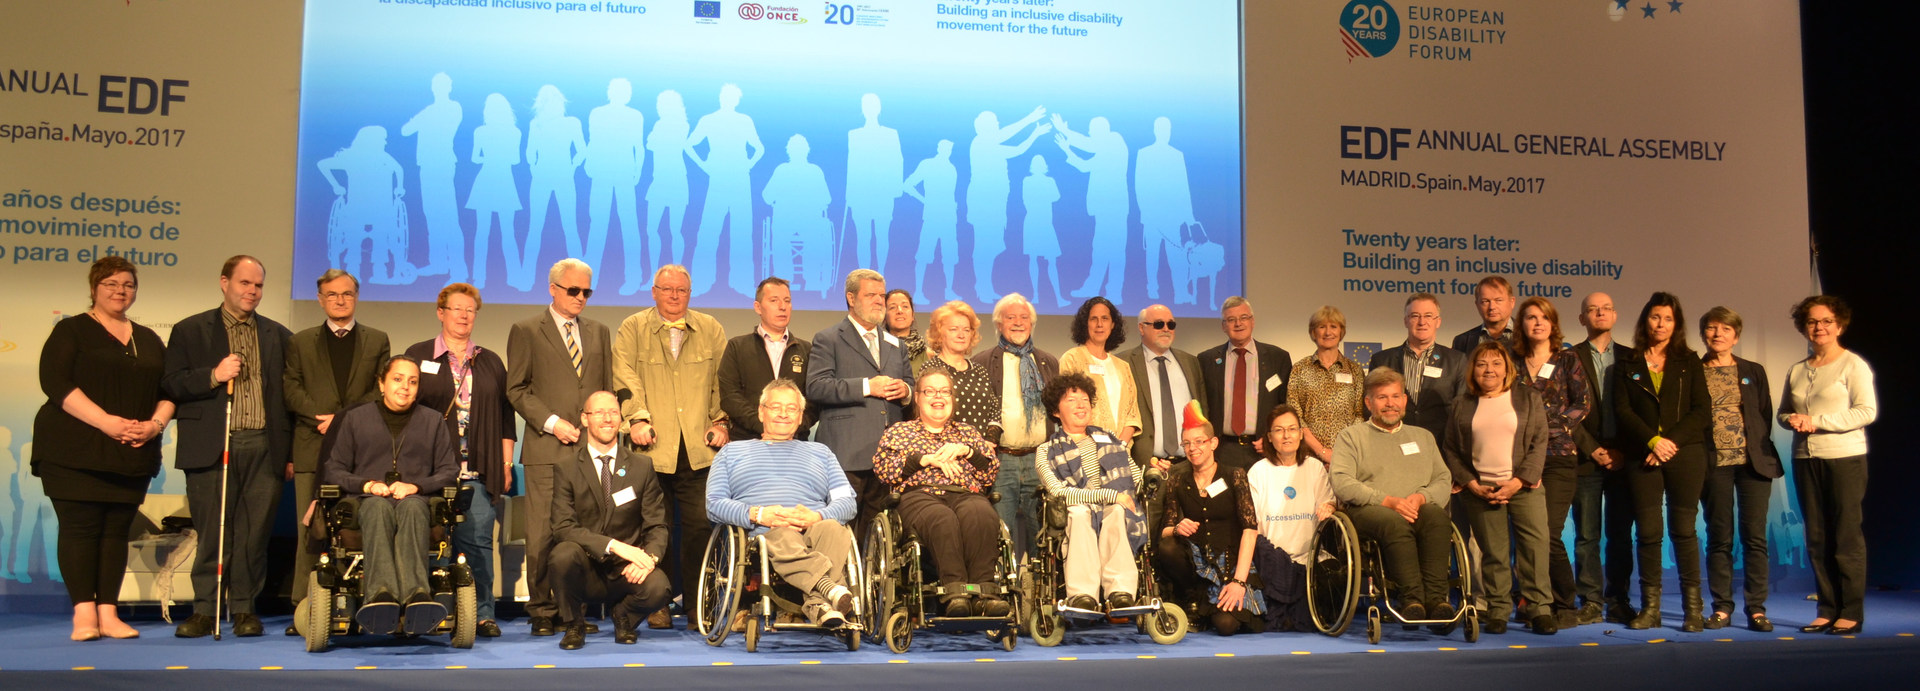 European Disability Forum (EDF) Board - Madrid, Spain - May 2017 - ☝ ⏎